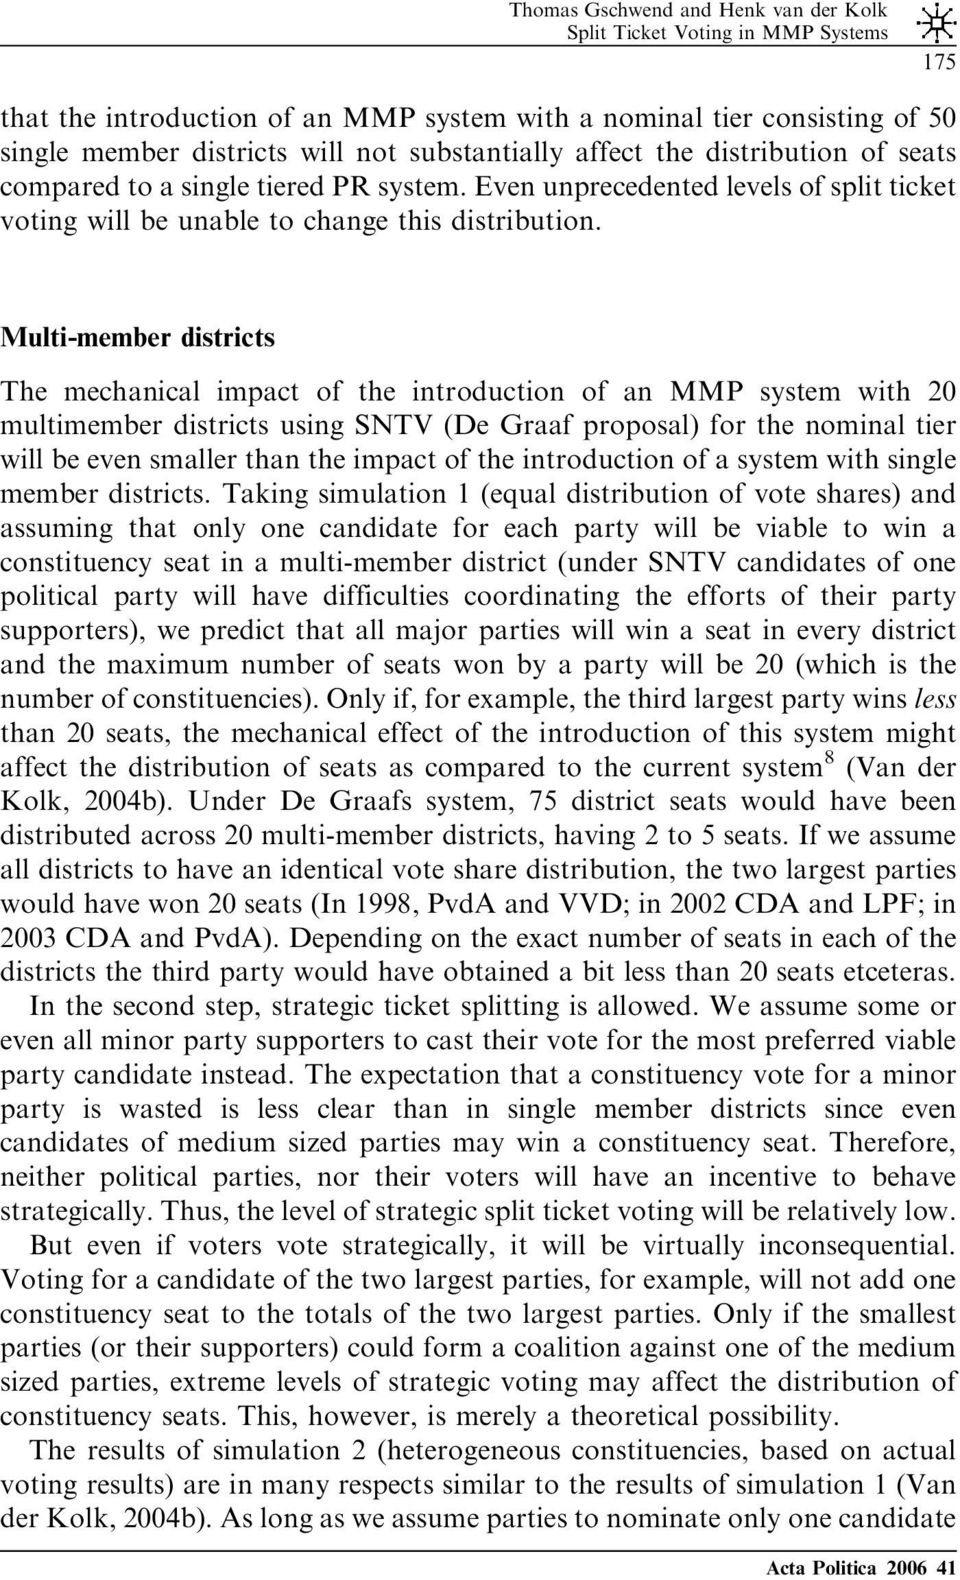 Multi-member districts The mechanical impact of the introduction of an MMP system with 20 multimember districts using SNTV (De Graaf proposal)for the nominal tier will be even smaller than the impact